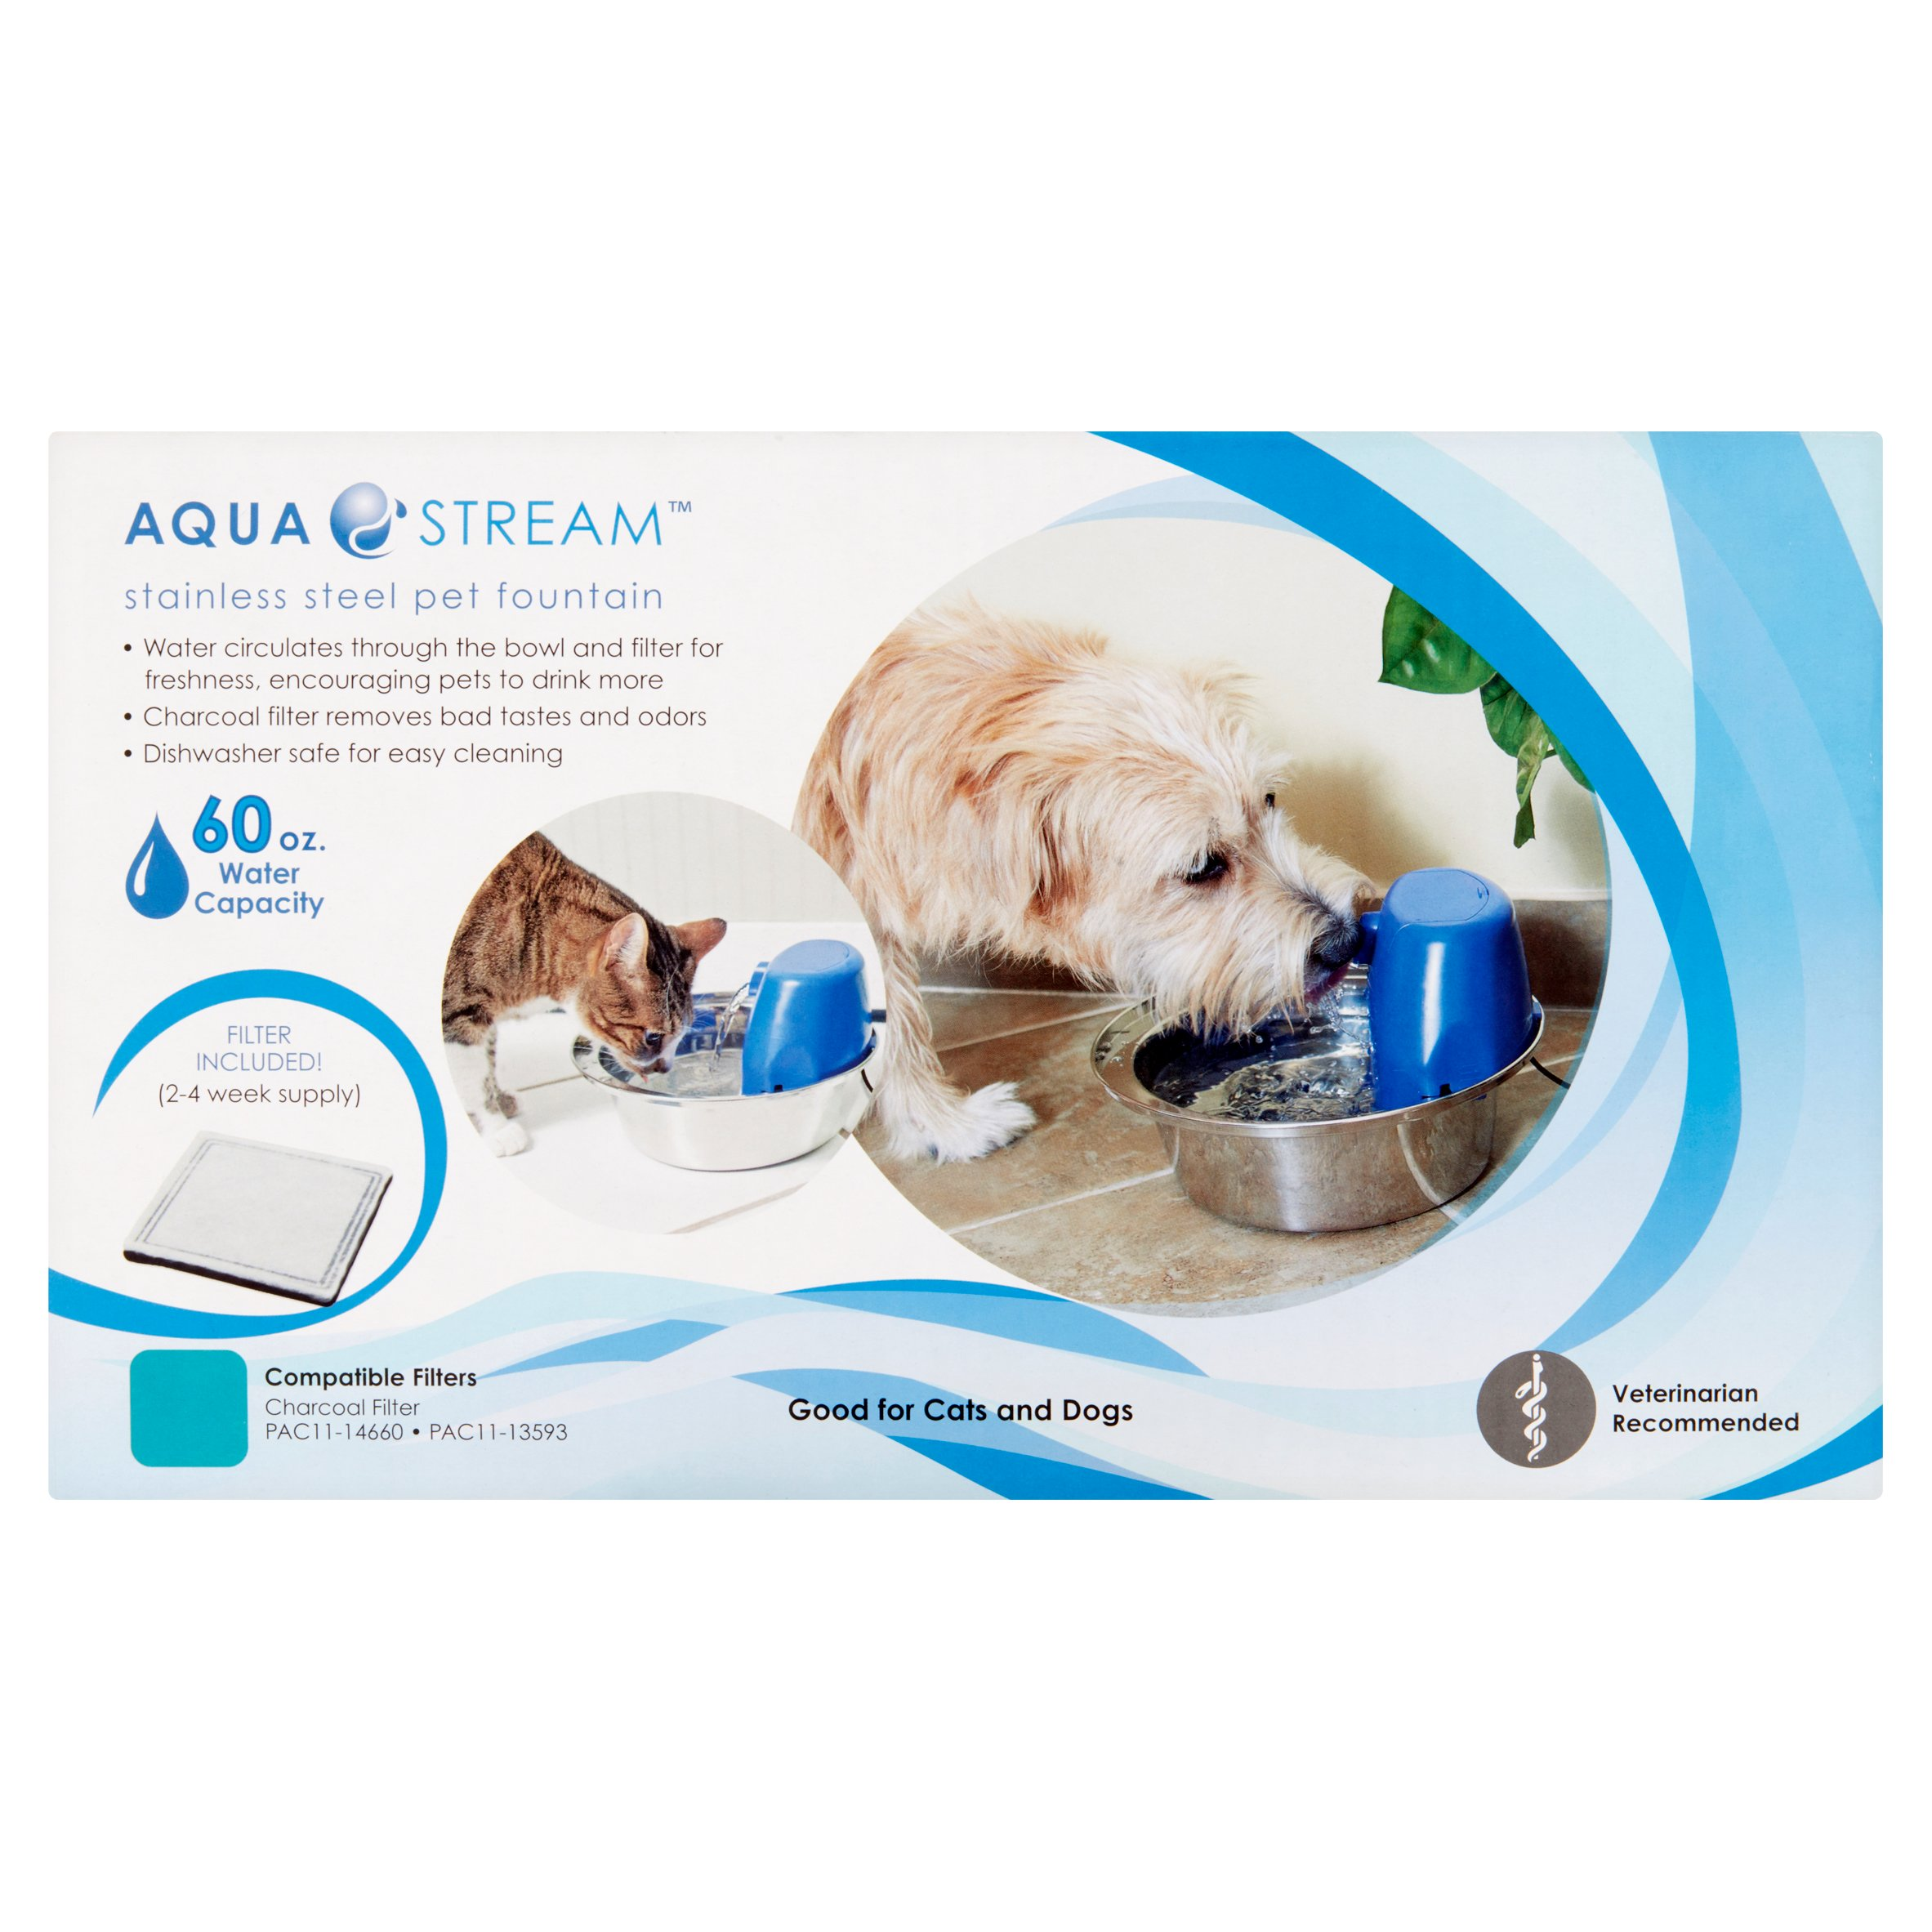 Aqua Stream Pet Fountain, Ocean Blue